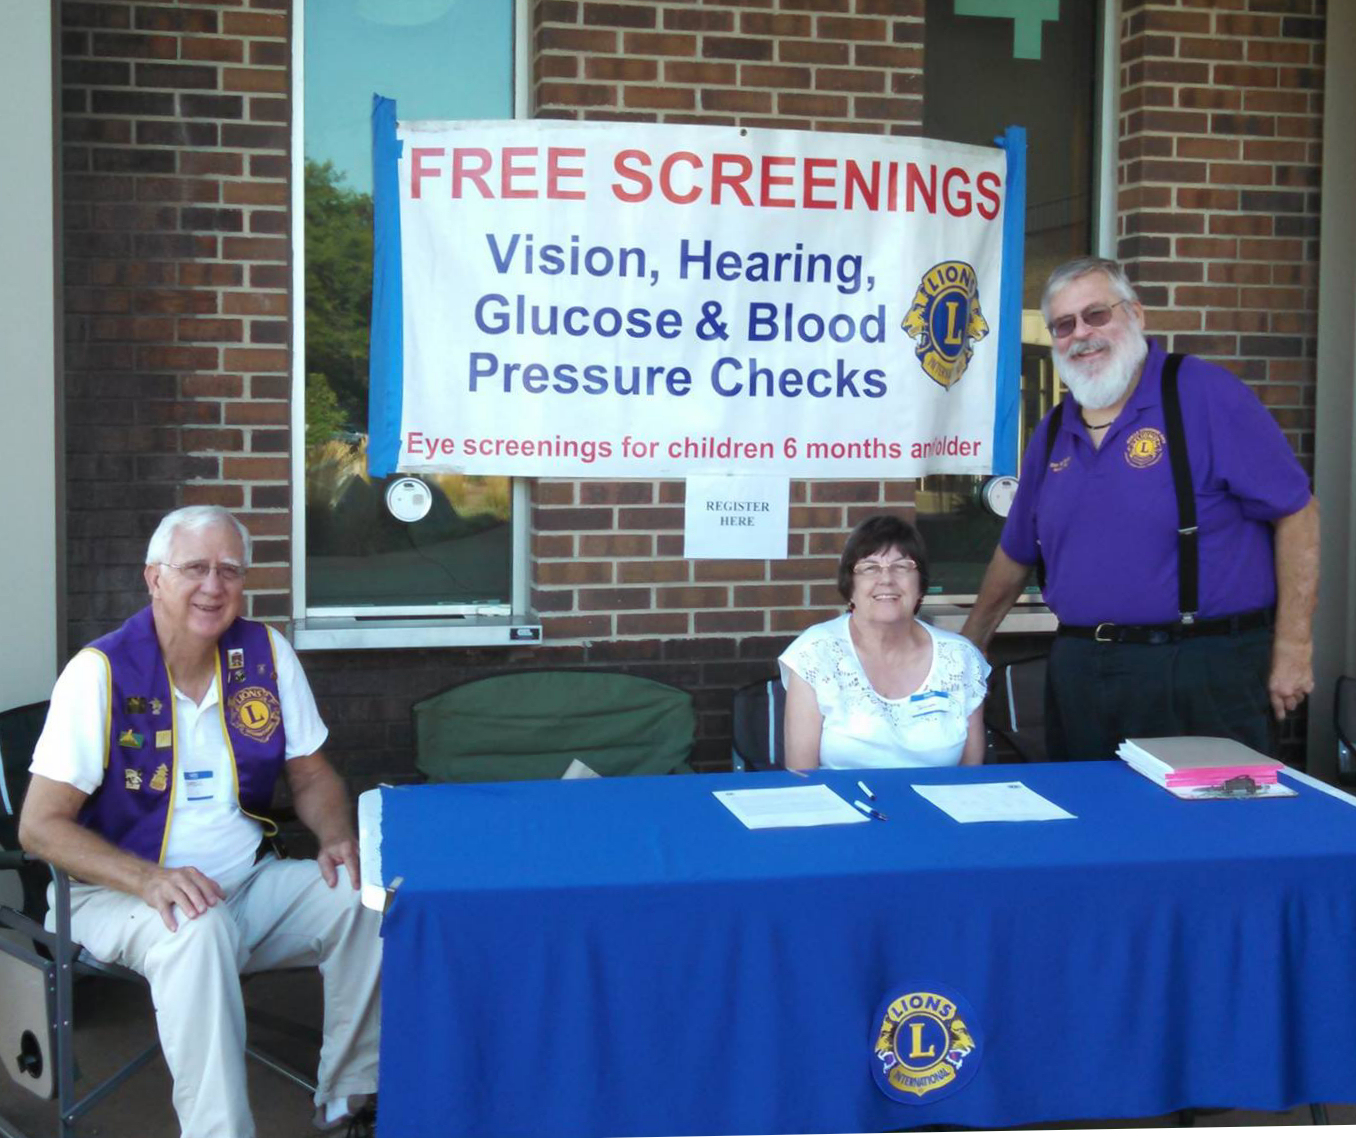 Vision Screening Event Planned